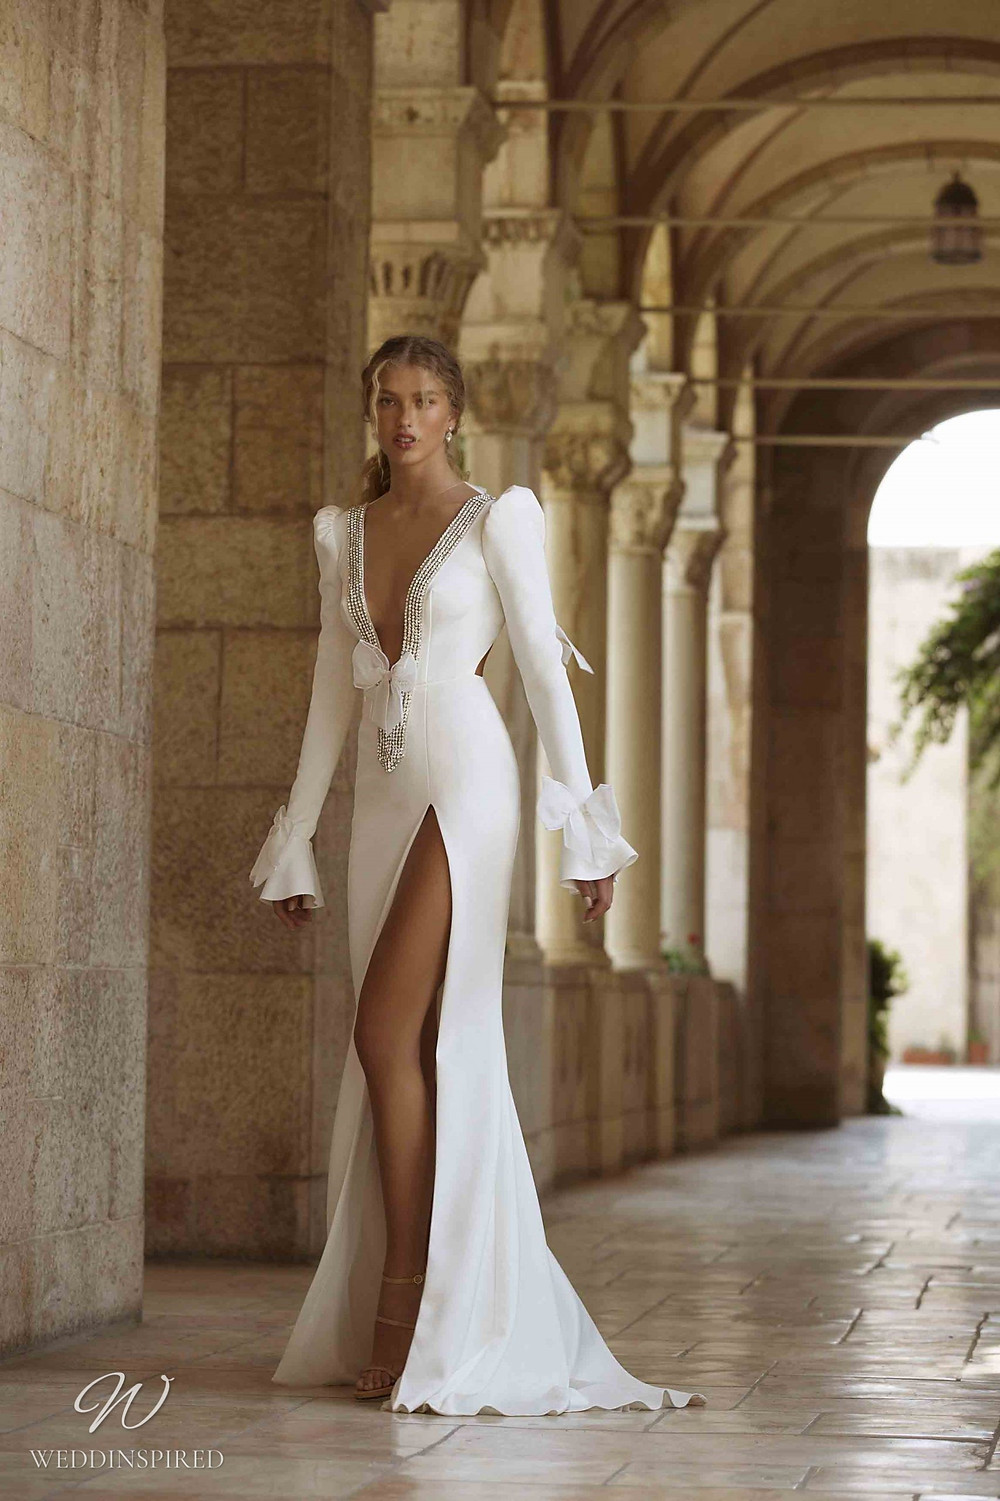 A Berta Colony 2021 crepe fitted wedding dress with long puff sleeves, a high slit and a low v neckline